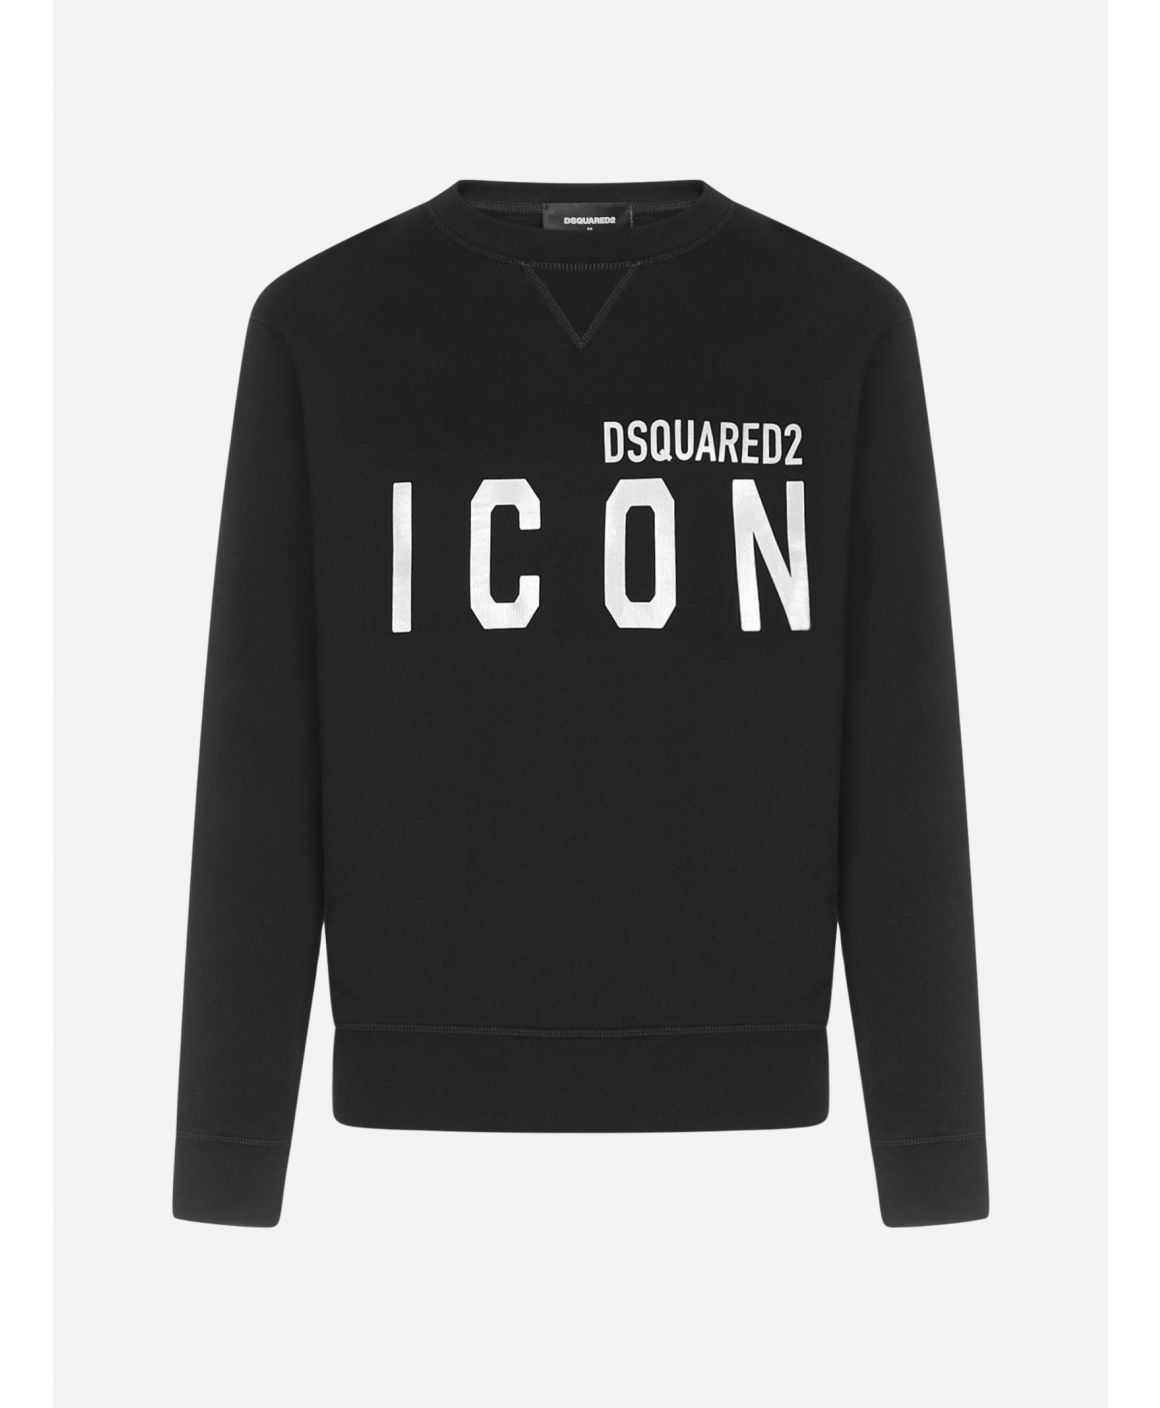 Icon reflective cotton sweatshirt